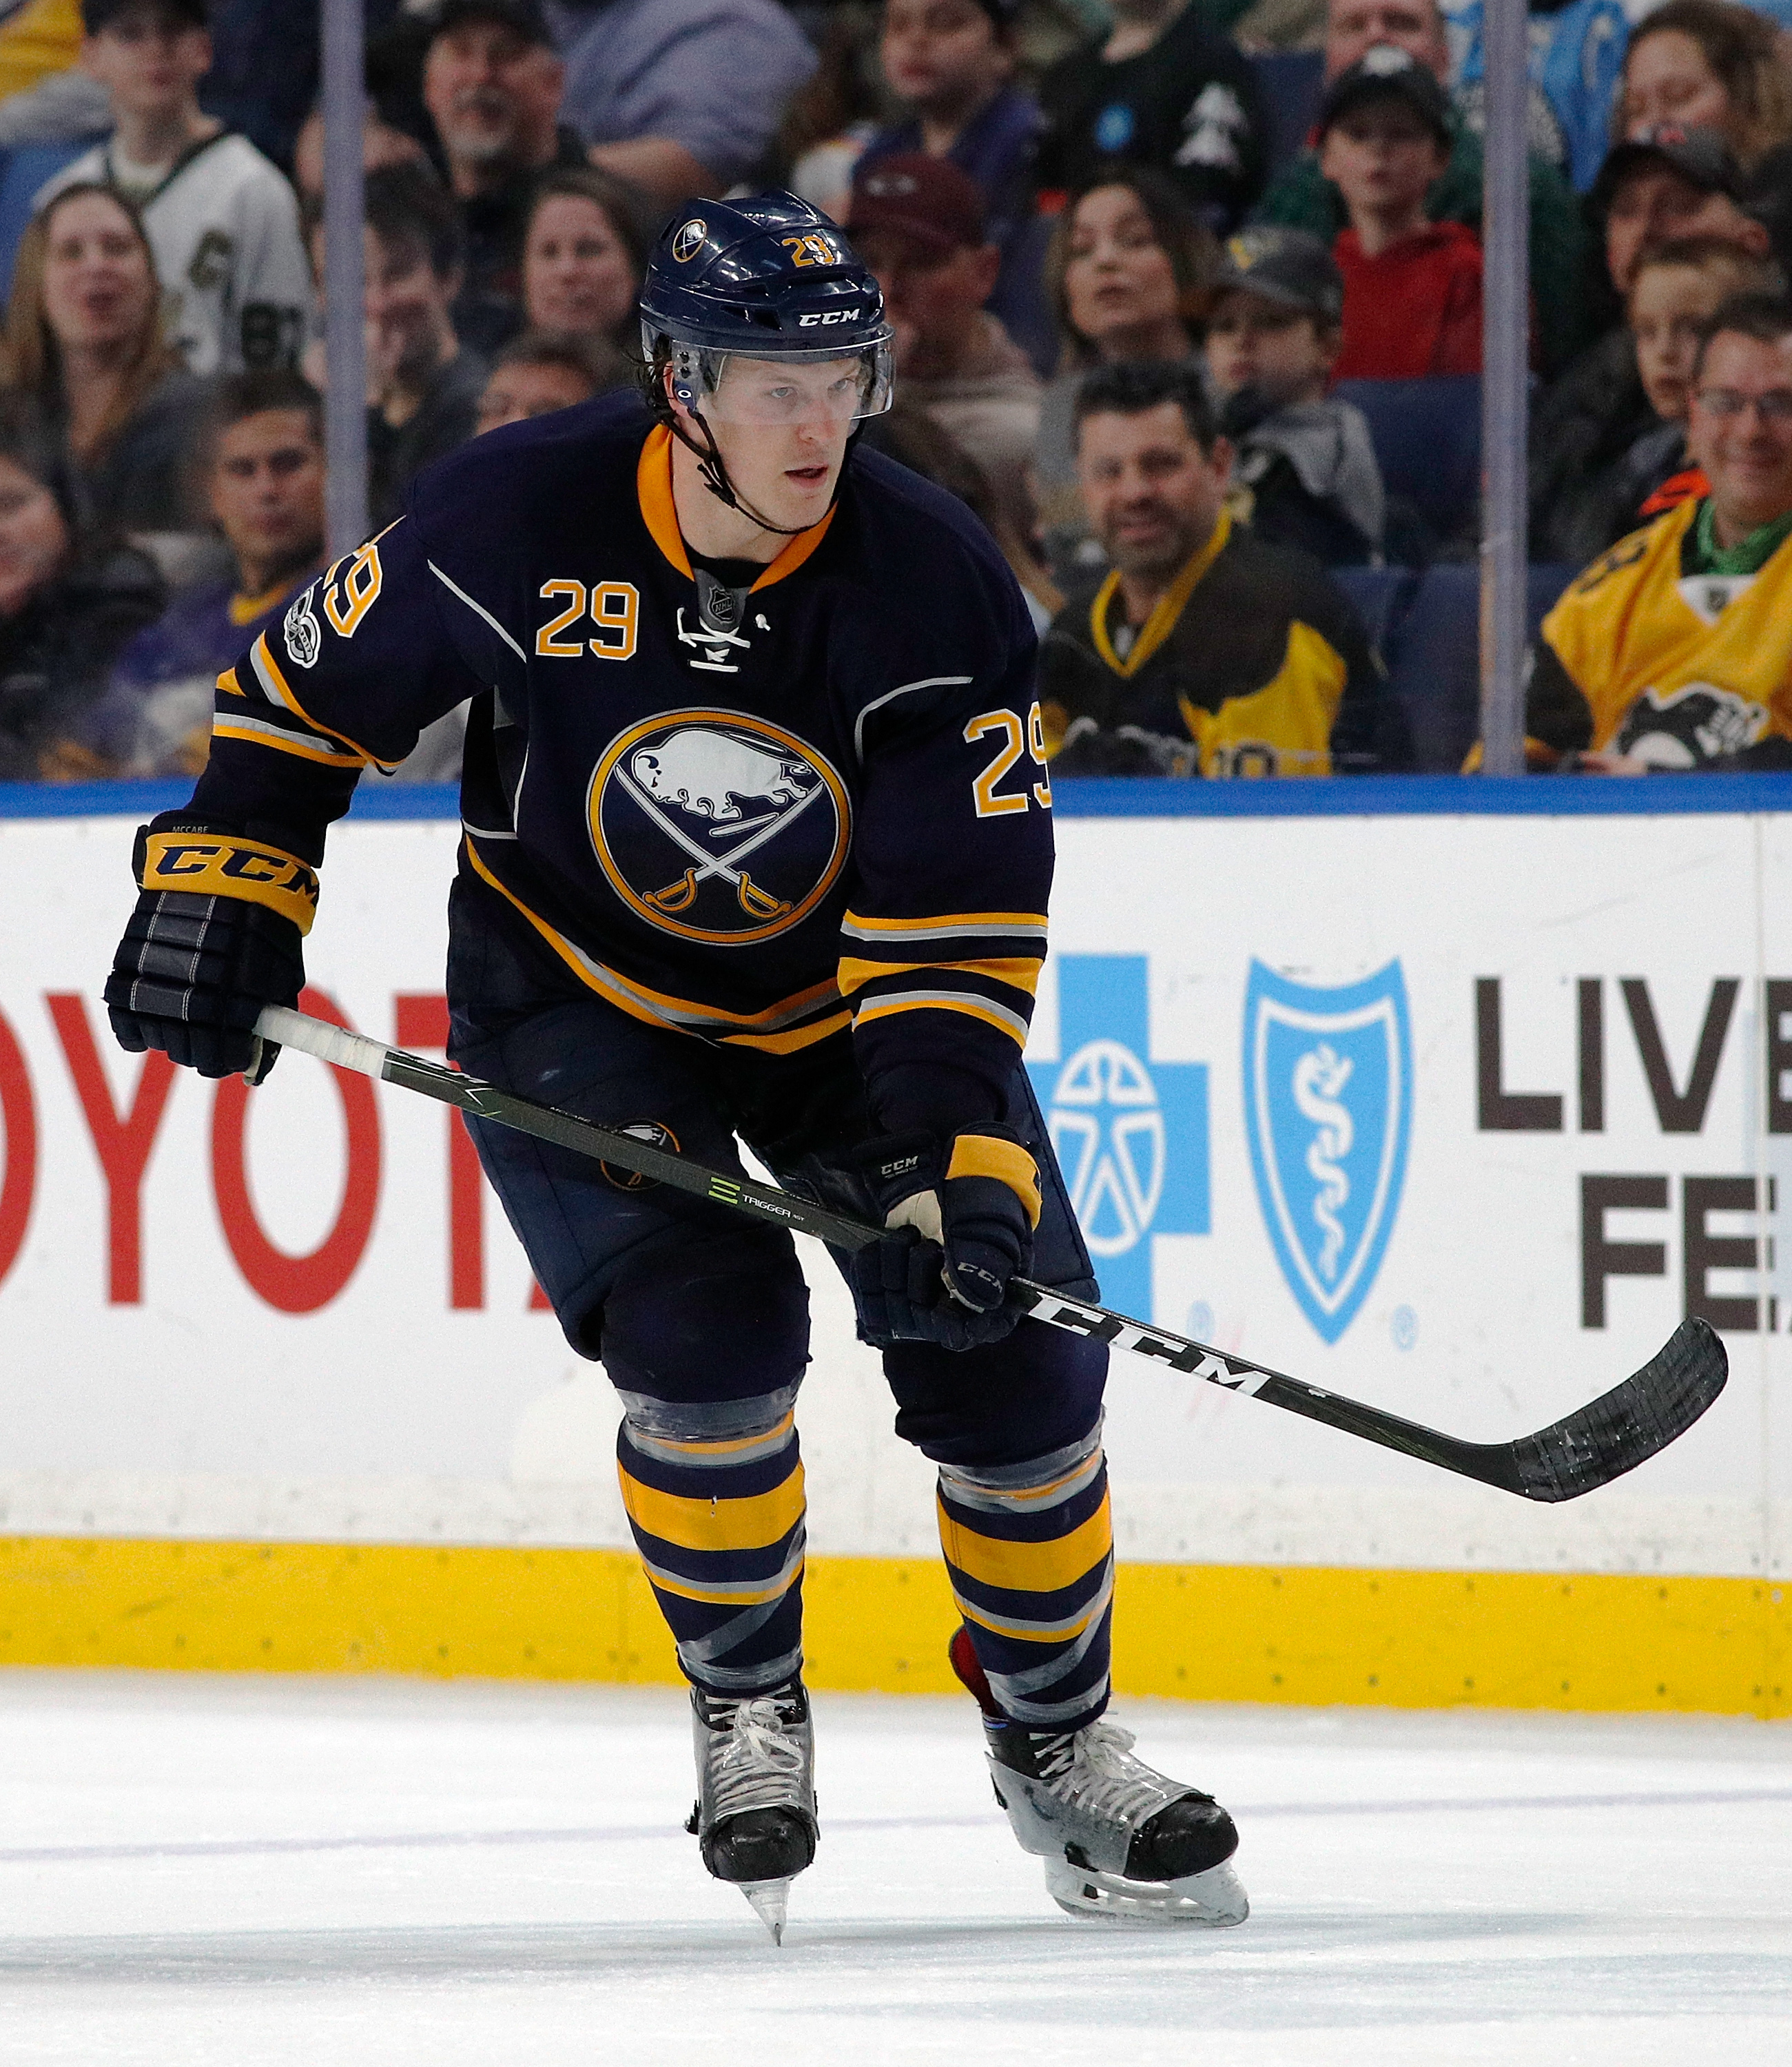 Jake McCabe knows he needs to perform for the Sabres. (Getty Images)